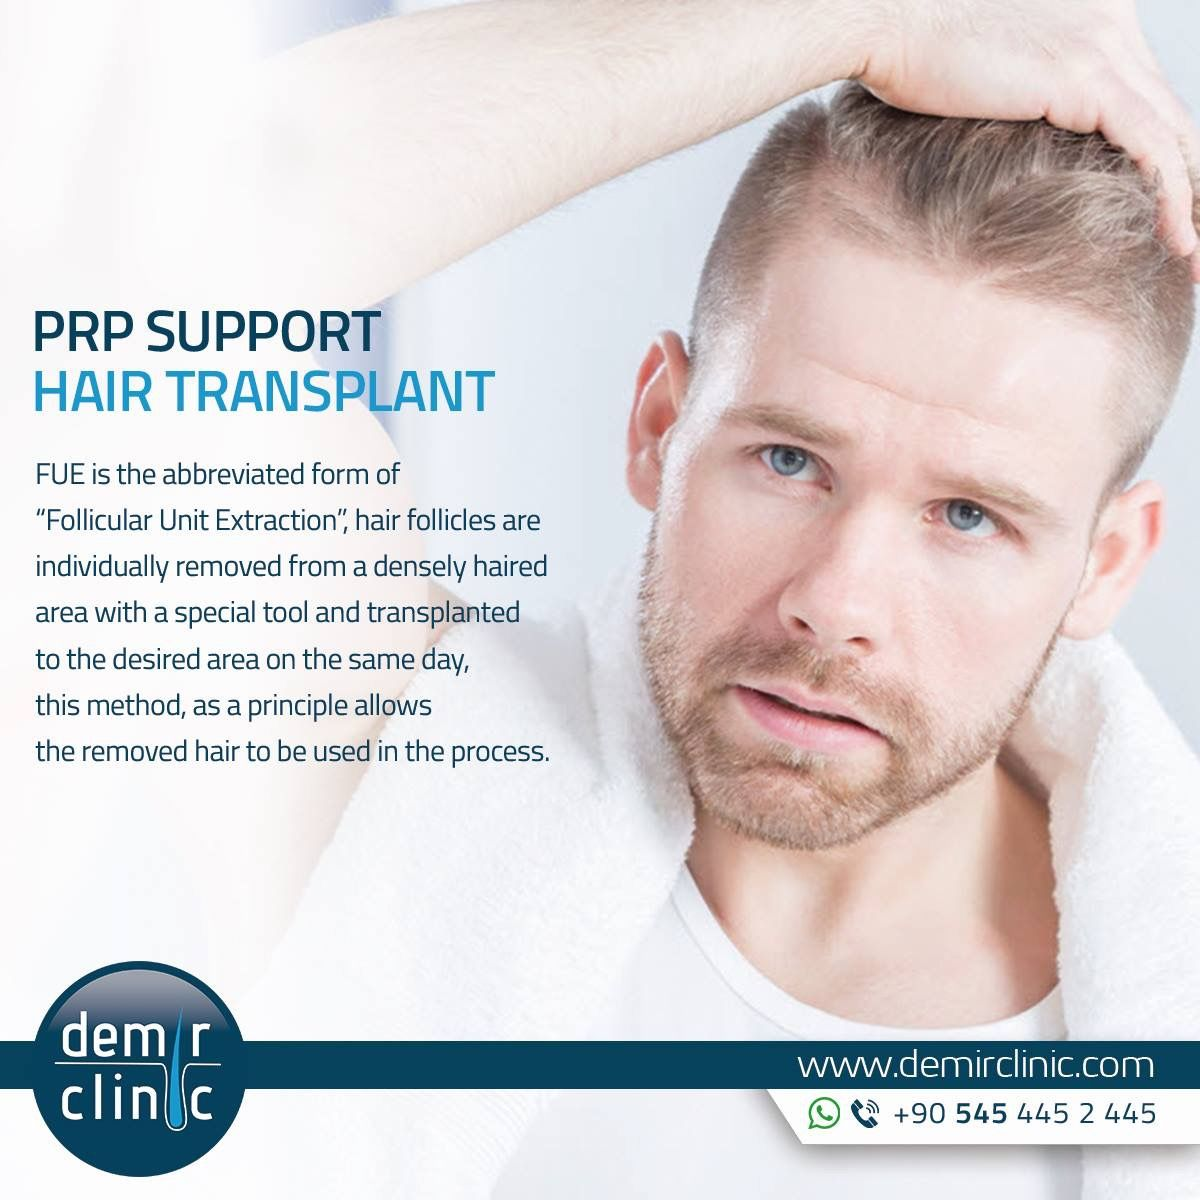 """FUE is the abbreviated form of """"Follicular Unit Extraction"""", hair follicles are individually removed from a densely haired area with a special tool and transplanted to the desired area on the same day, this method, as a principle allows the removed hair to be used in the process. #FUE #HairTransplant #FollicularUnitExtraction #Turkey #İstanbul #FueHairTransplant #Graft #Aesthetic #Doctor #DrDemir #Medical #Hair #Transplant #DemirClinic"""